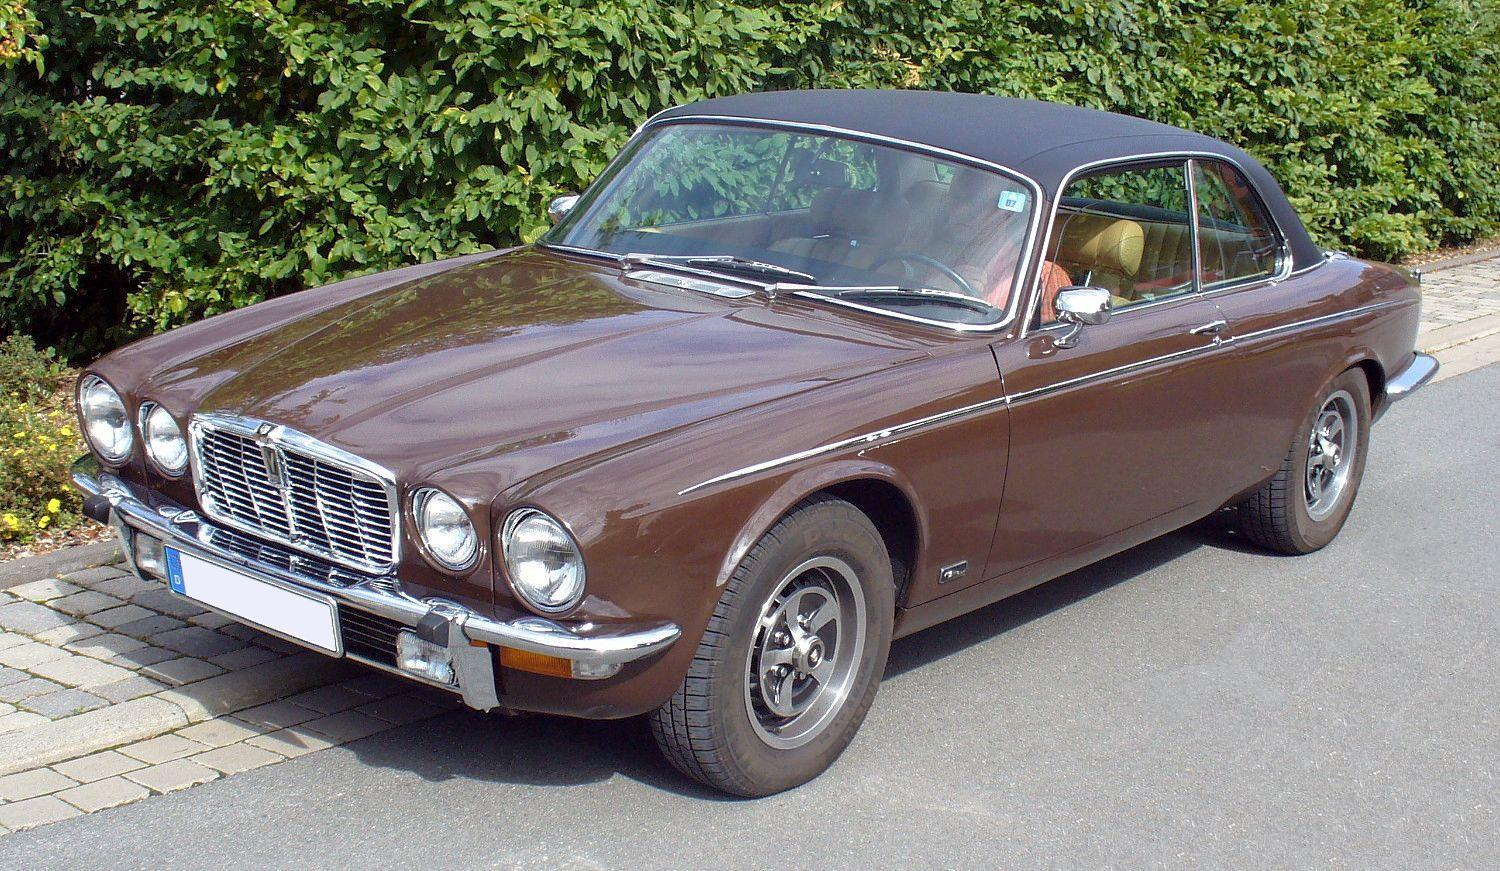 Jaguar coupe photo - 4